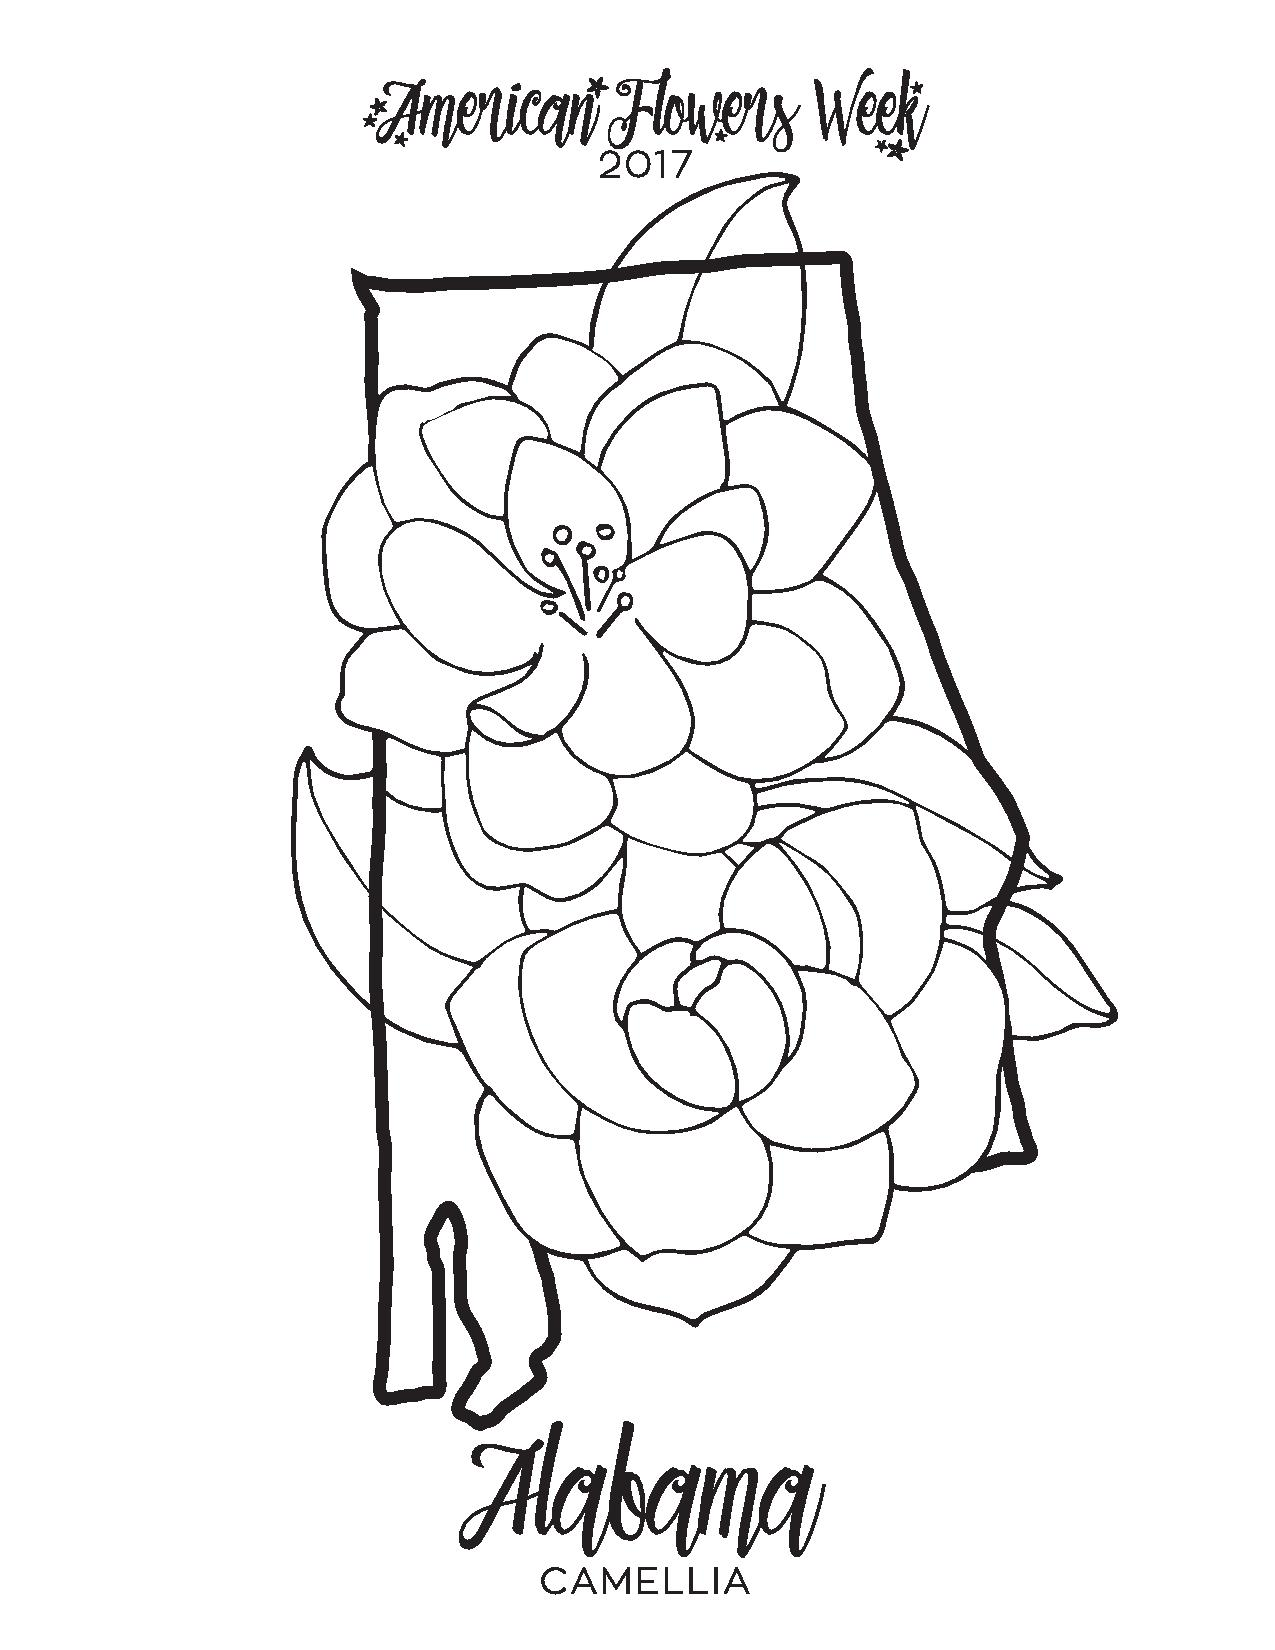 1275x1650 State Flowers Free Coloring Pages American Flowers Week